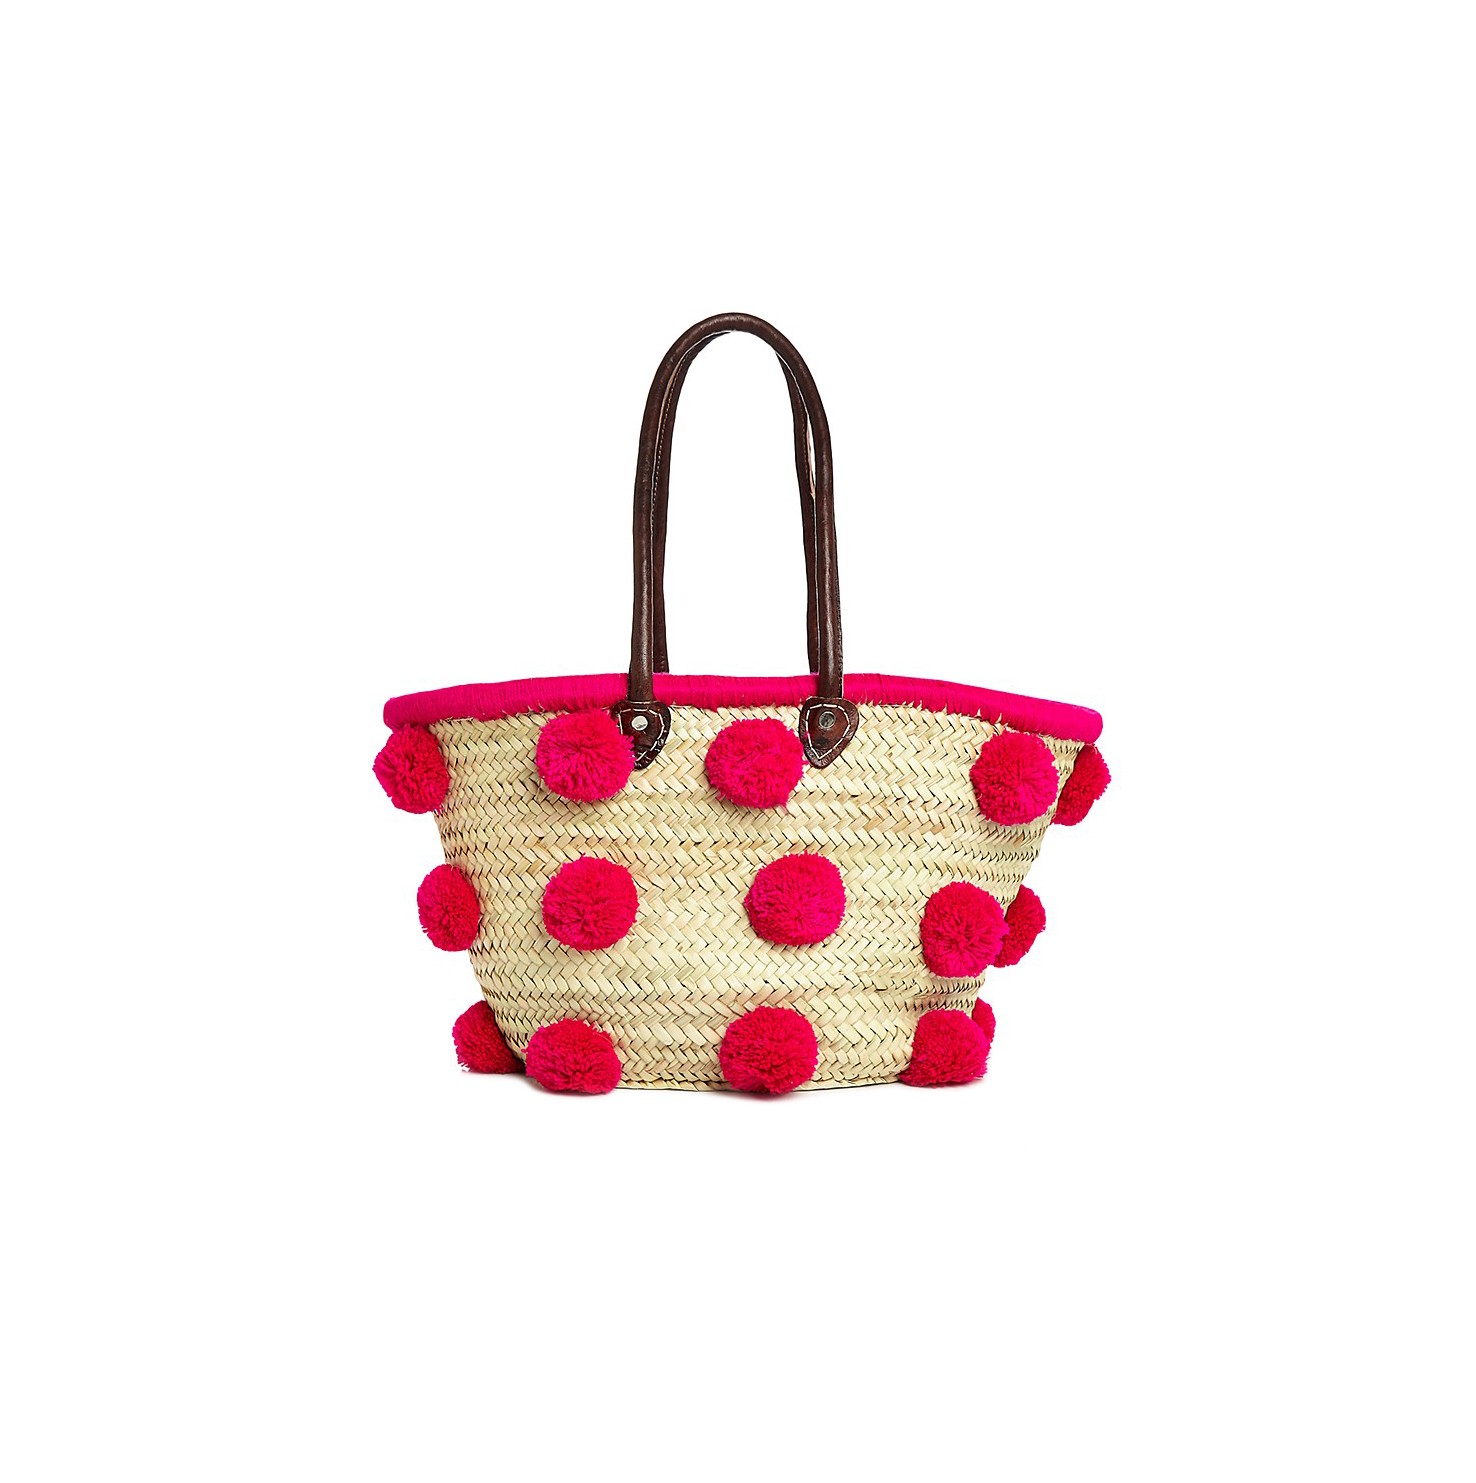 Marrakech Pom Pom Large Tote